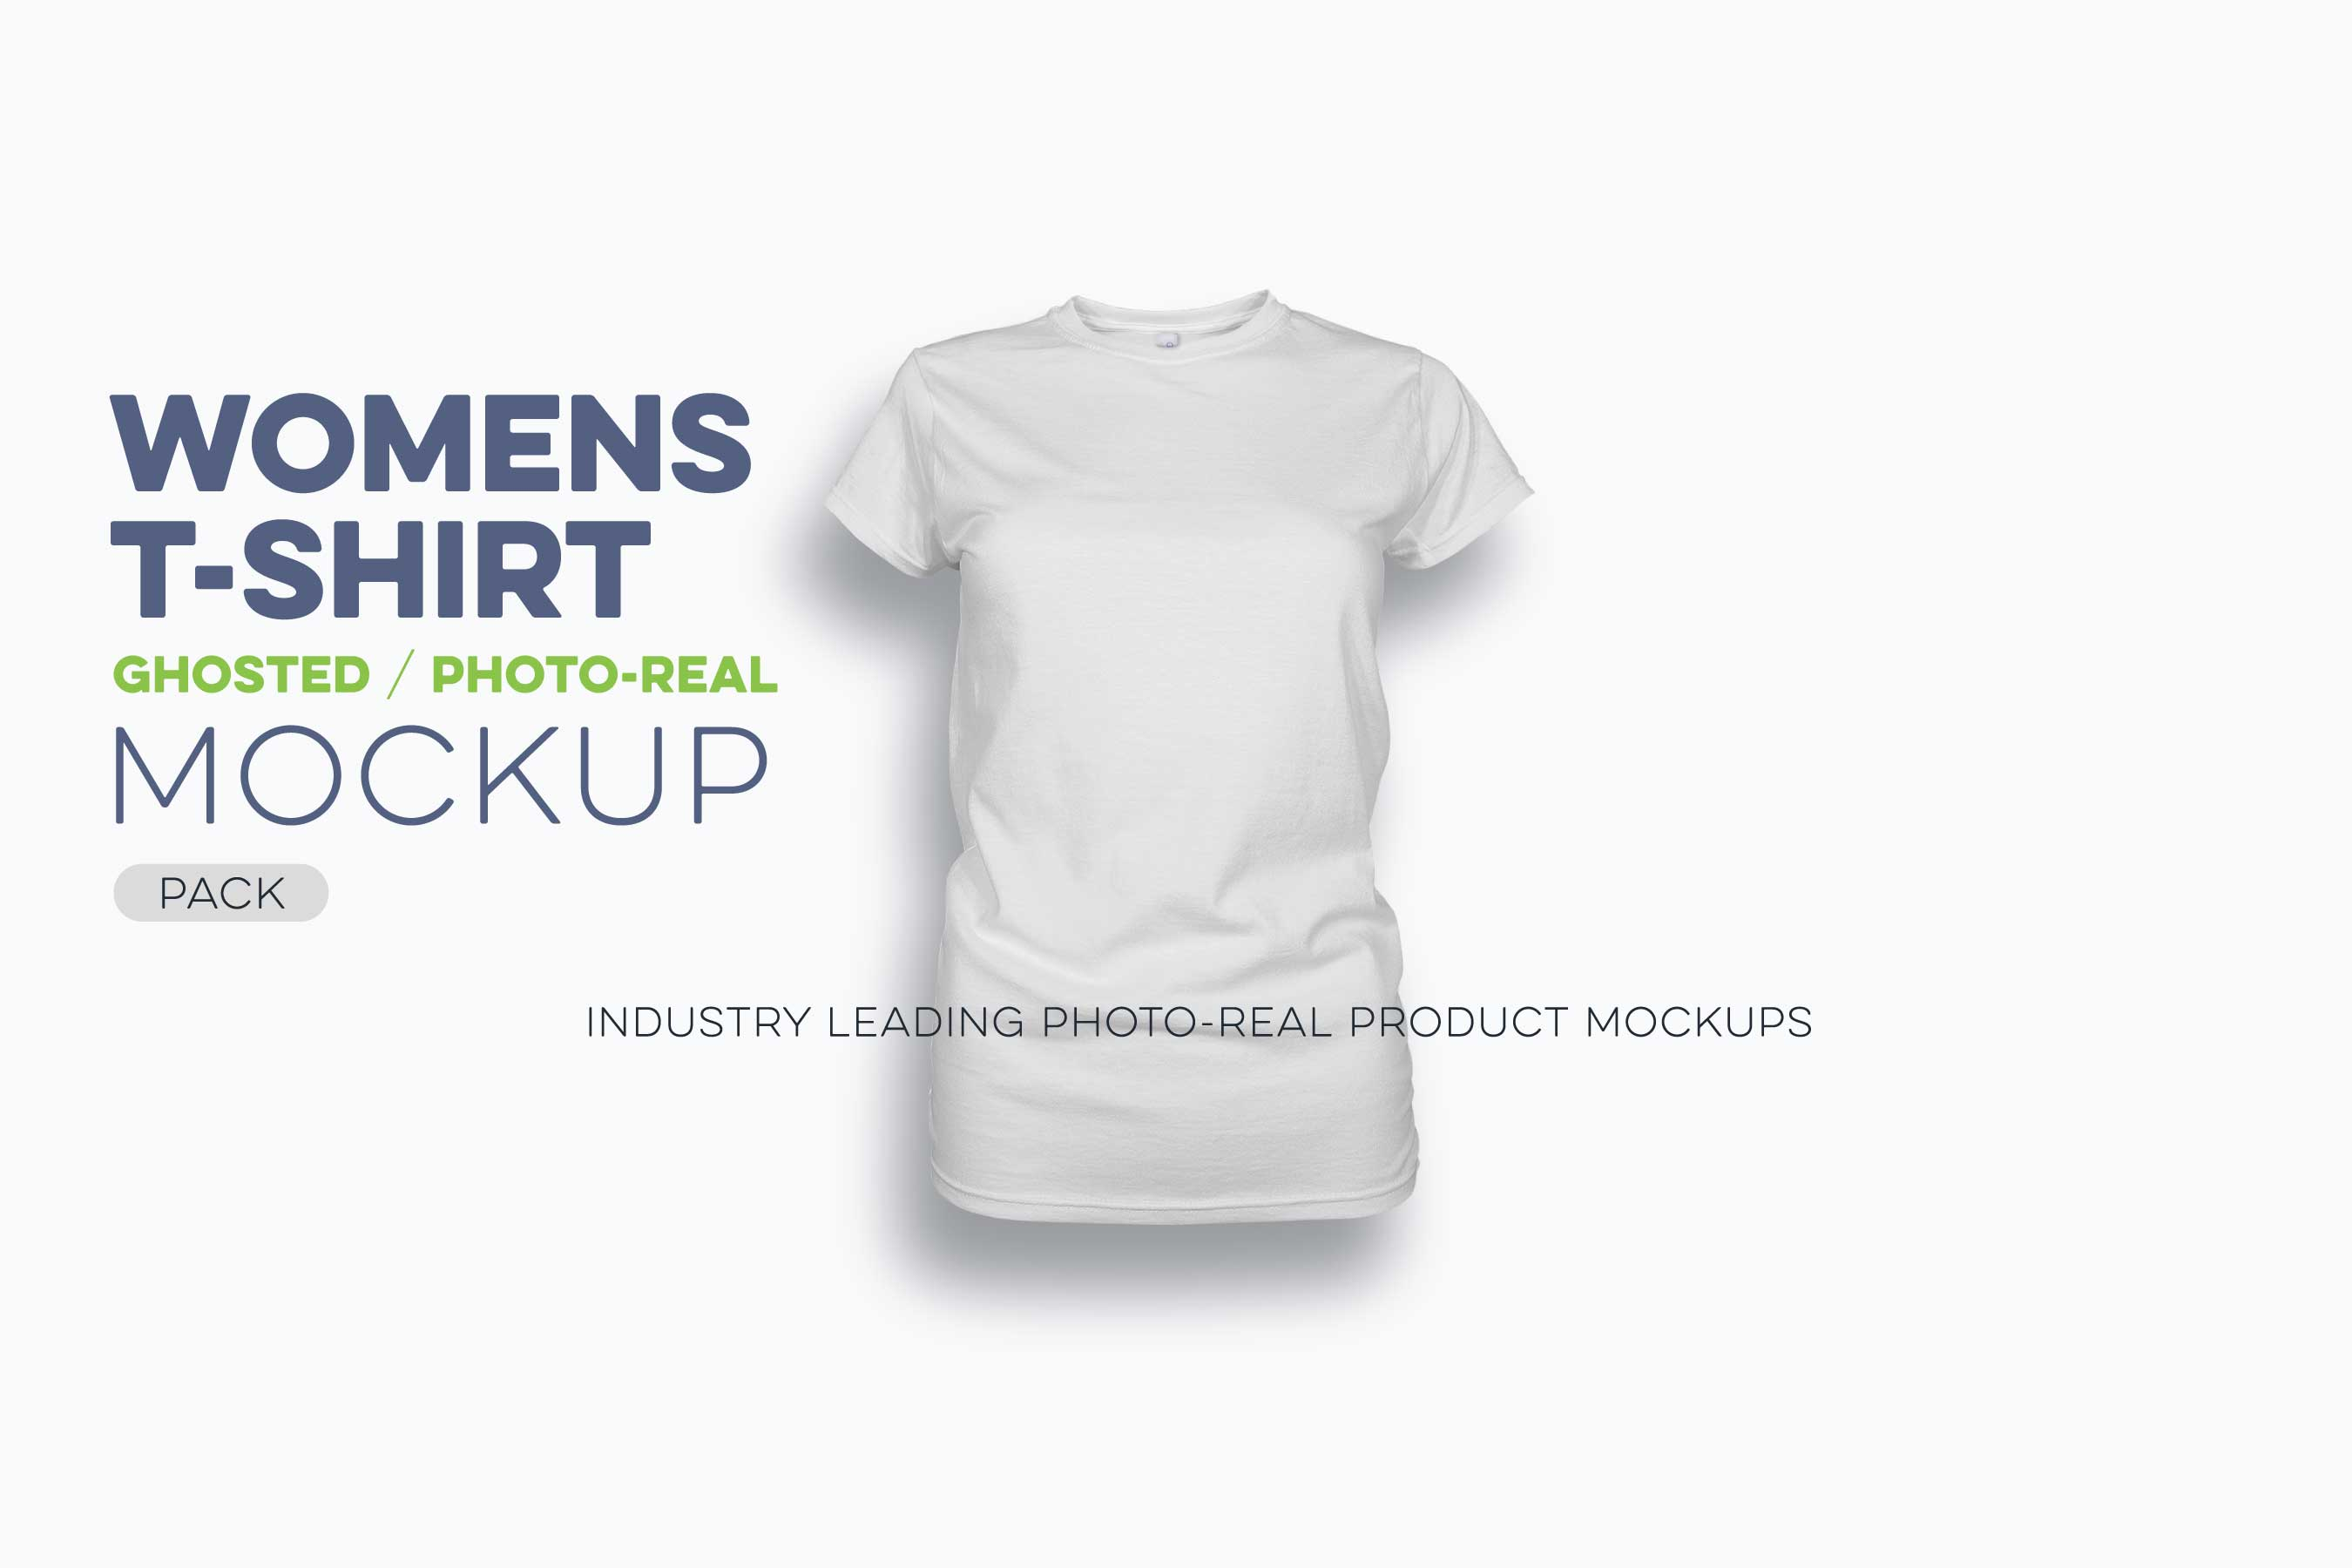 womens ghosted t-shirt mockup pack N